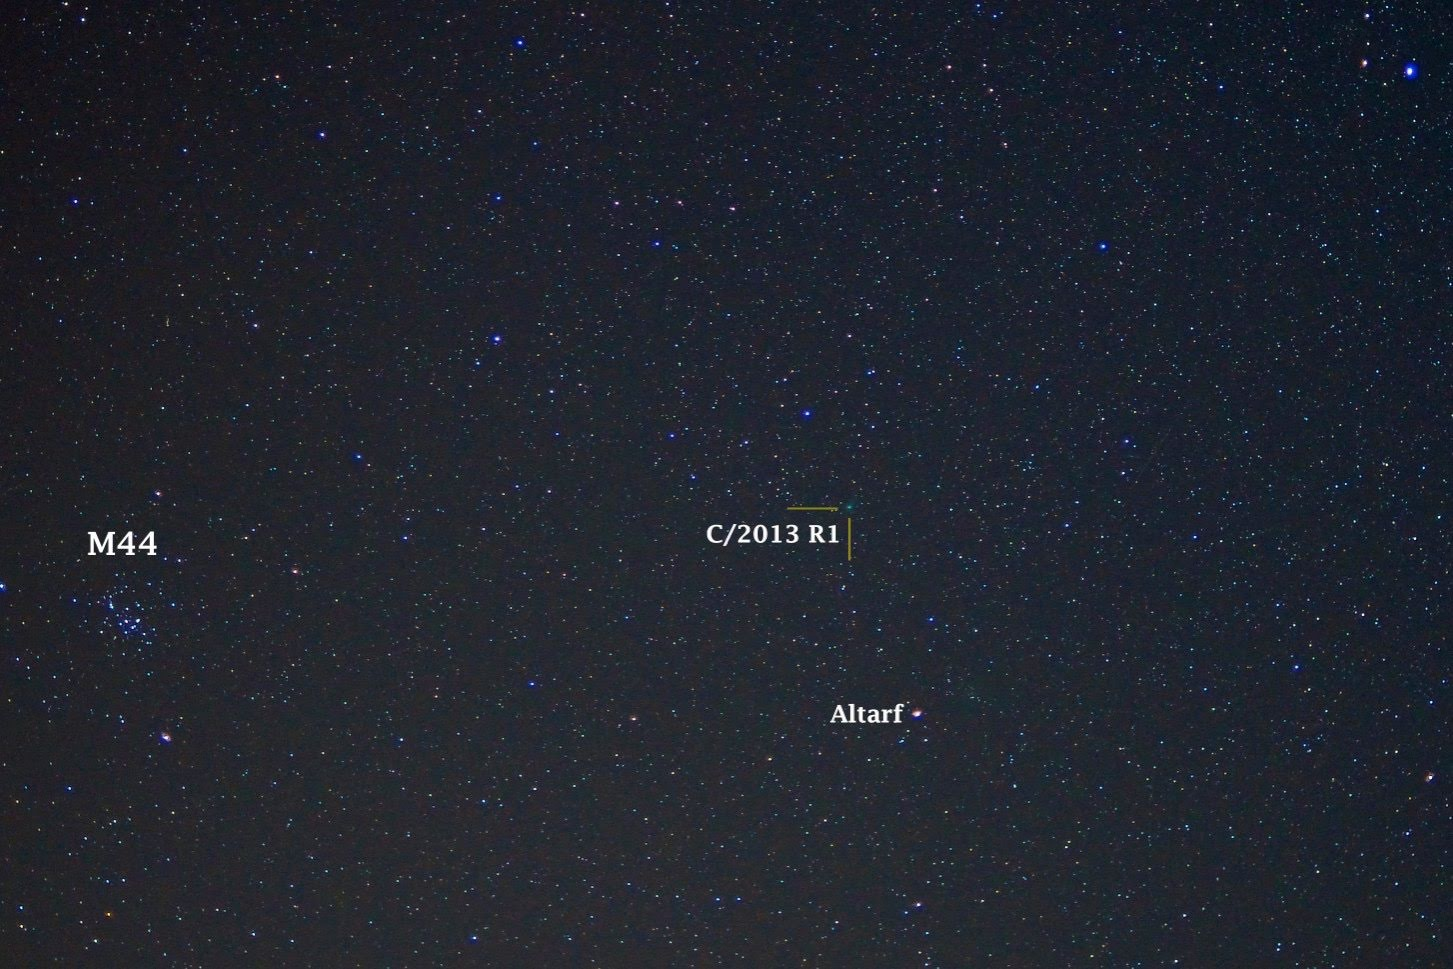 M44 and Comet Lovejoy (C/2013 R1) on November 2, 2013